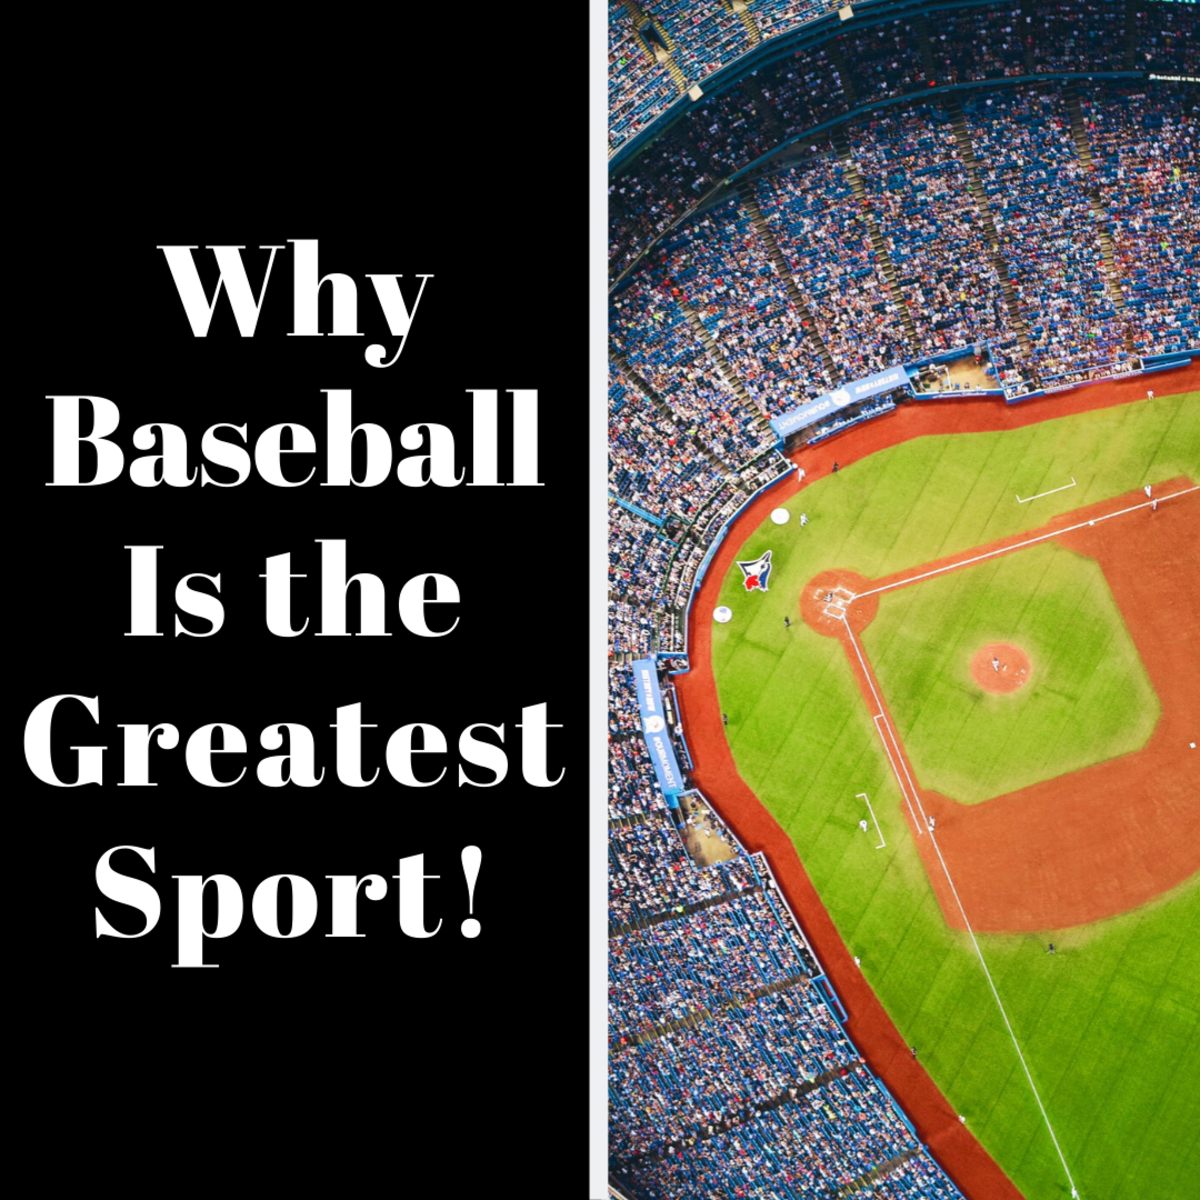 Read on for a woman's perspective on baseball.